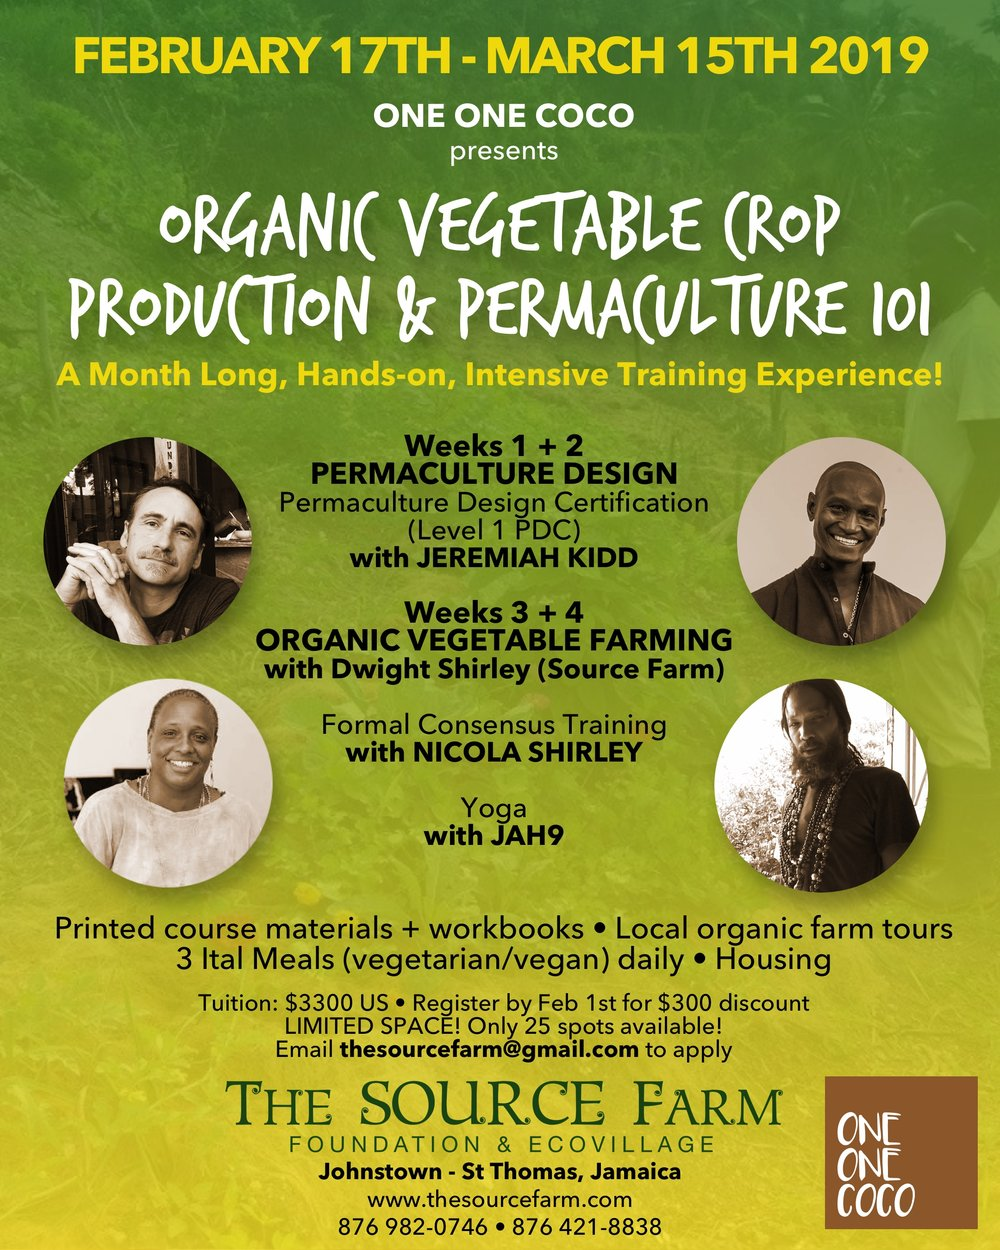 organic-vegetable-crops-permaculture-101-v6.jpg